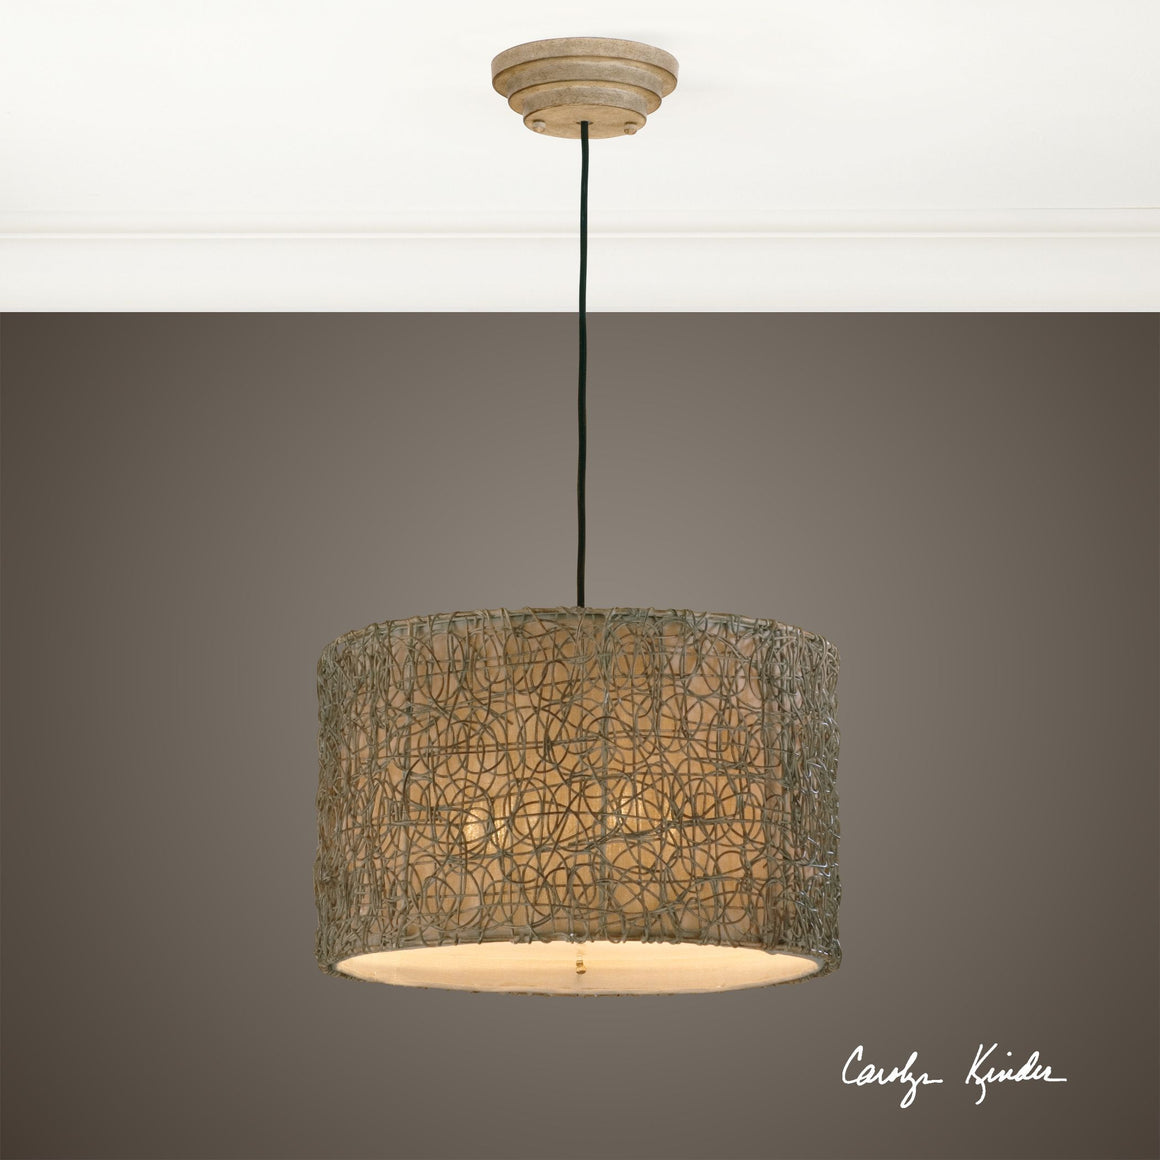 Knotted Rattan Light Drum Pendant - taylor ray decor